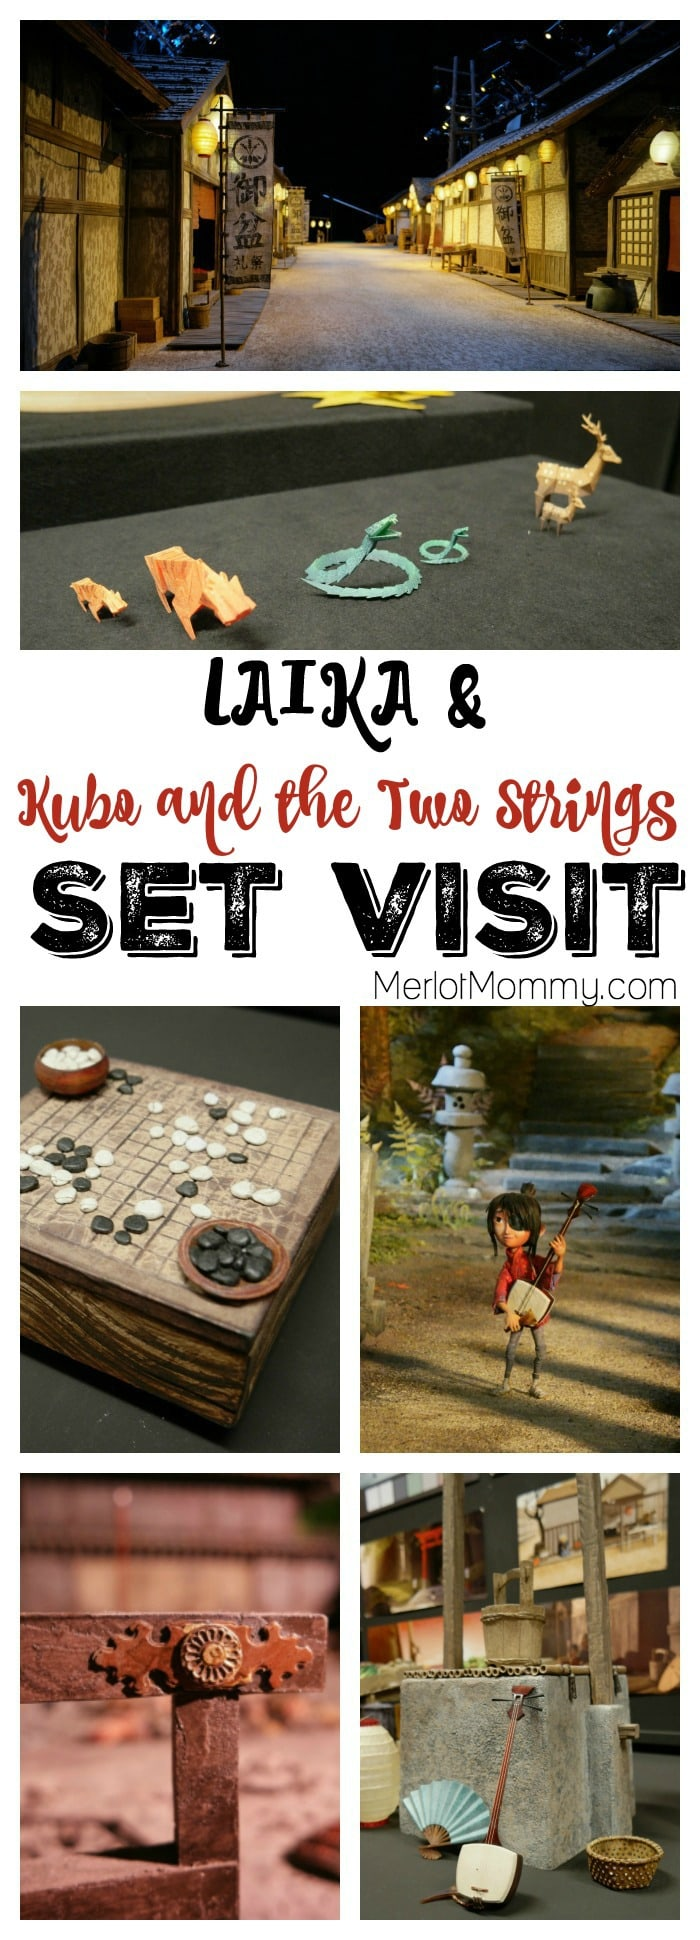 A Visit to LAIKA and the Set of Kubo and the Two Strings